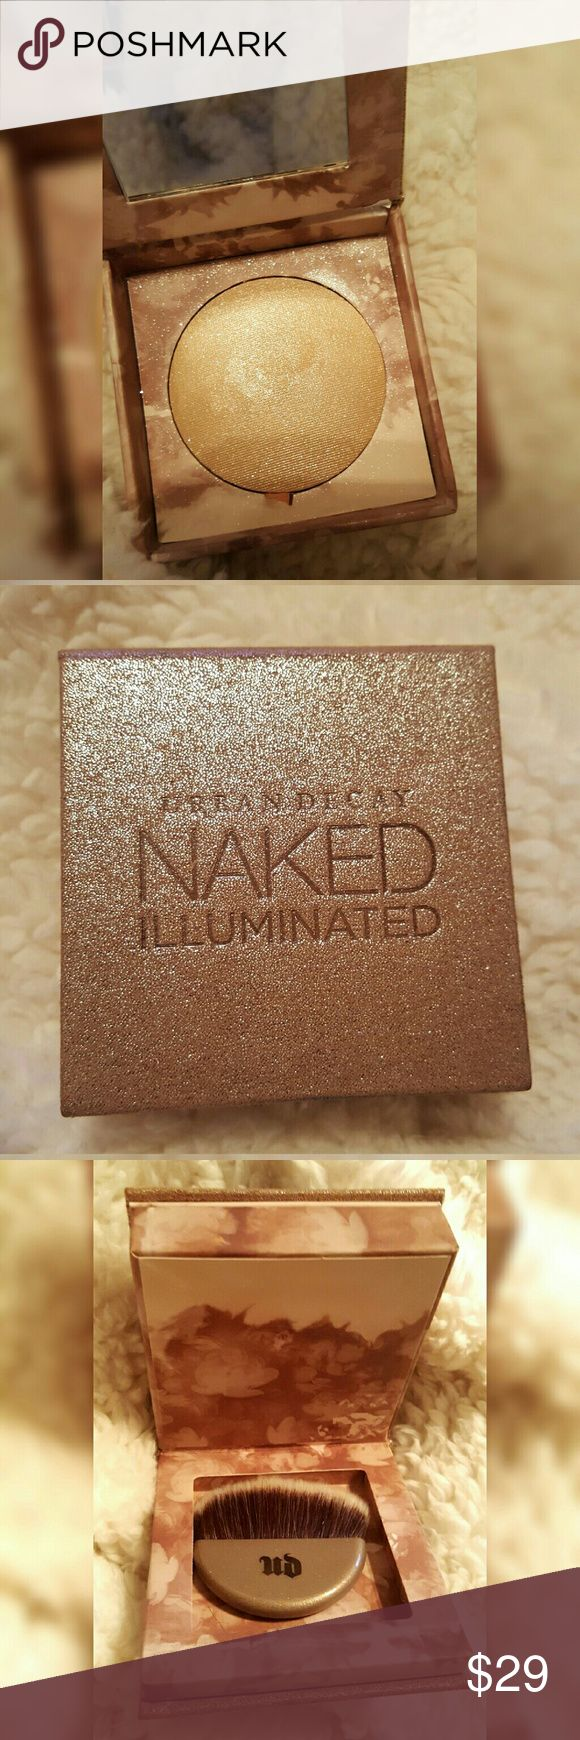 Selling this Urban decay naked illuminated highlight luminous on Poshmark! My username is: _rach512_. #shopmycloset #poshmark #fashion #shopping #style #forsale #Urban Decay #Other